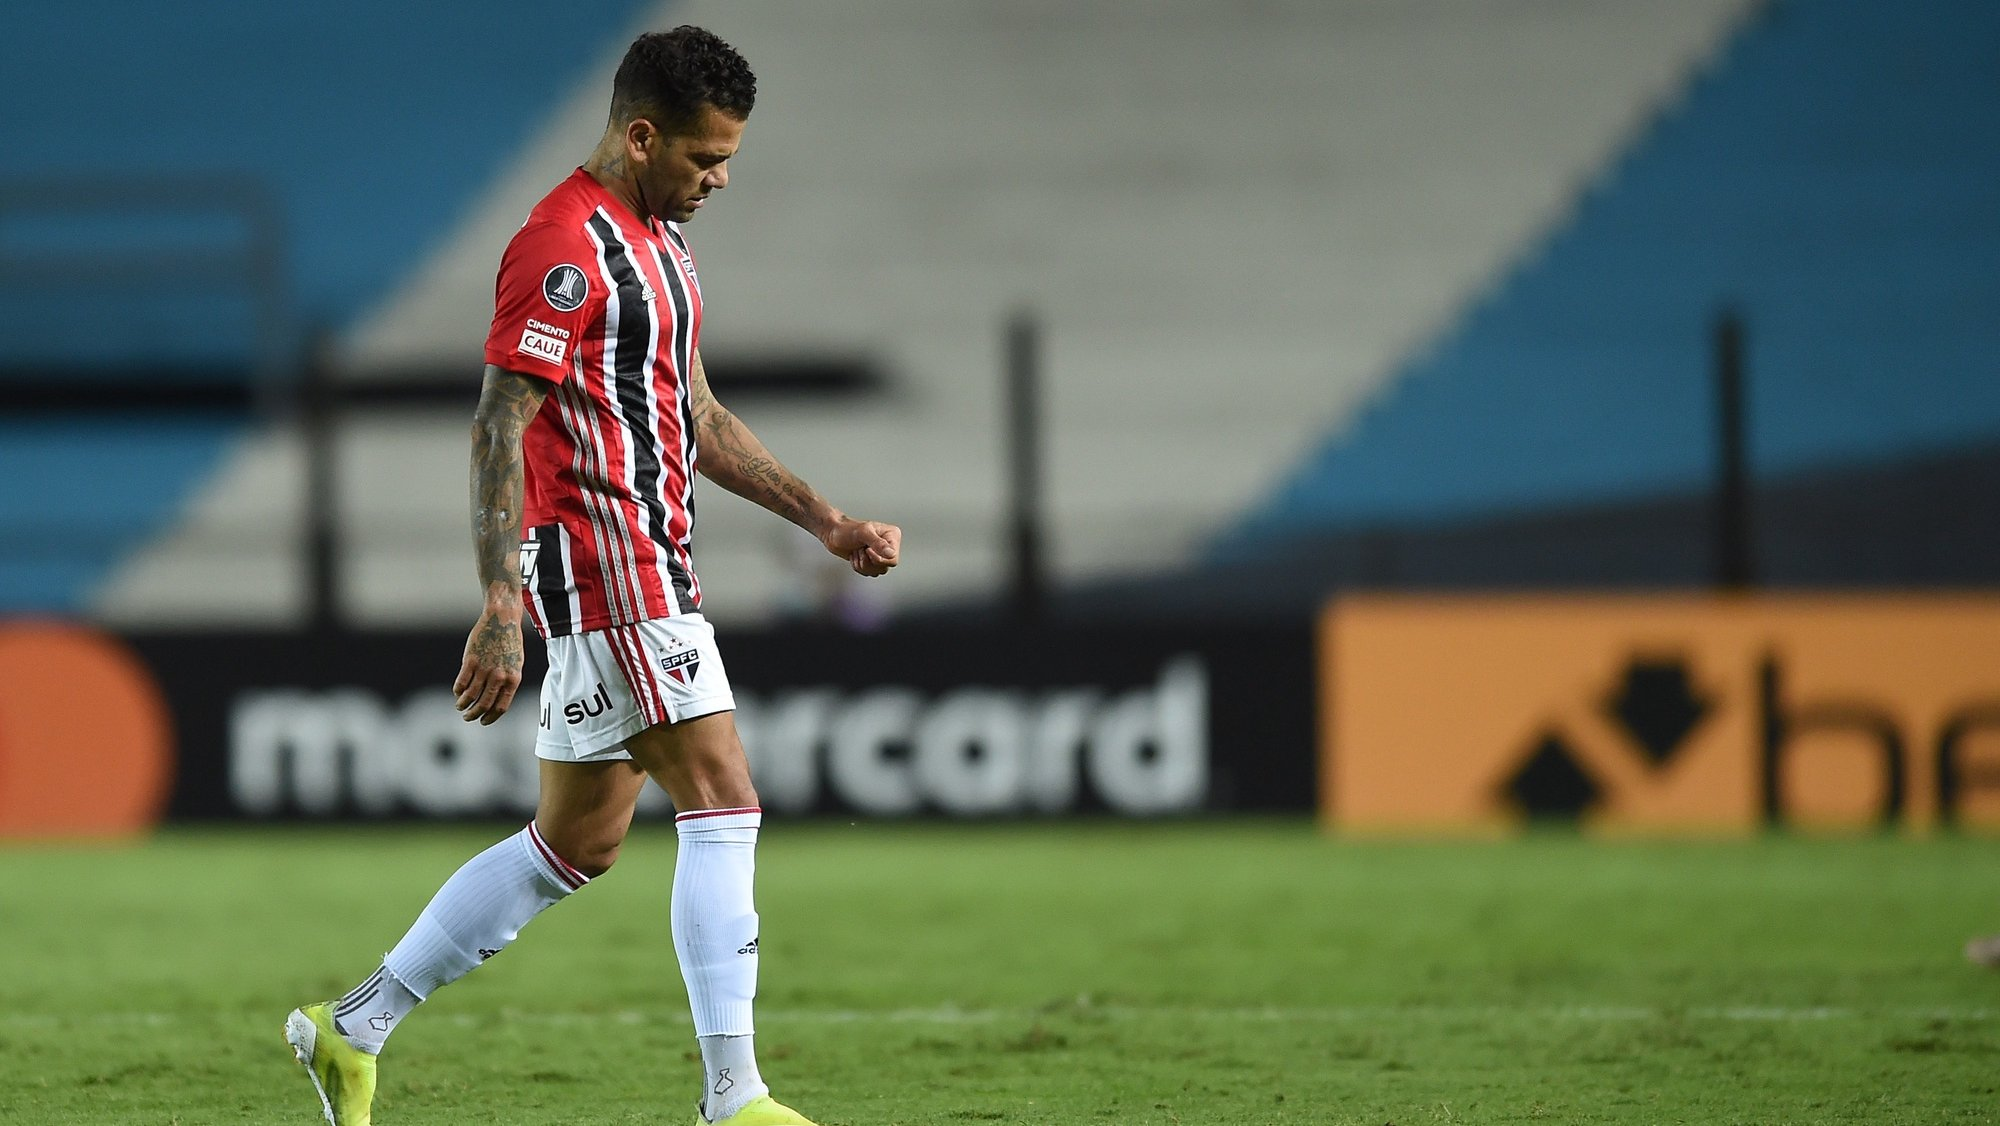 epa09180022 Sao Paulo's Dani Alves exits the pitch for a substitution during the Group E match of the Copa Libertadores between Racing Club and Sao Paulo, at the Presidente Peron 'El Cilindro' stadium, in Avellaneda, Argentina, 05 May 2021.  EPA/Marcelo Endelli / POOL